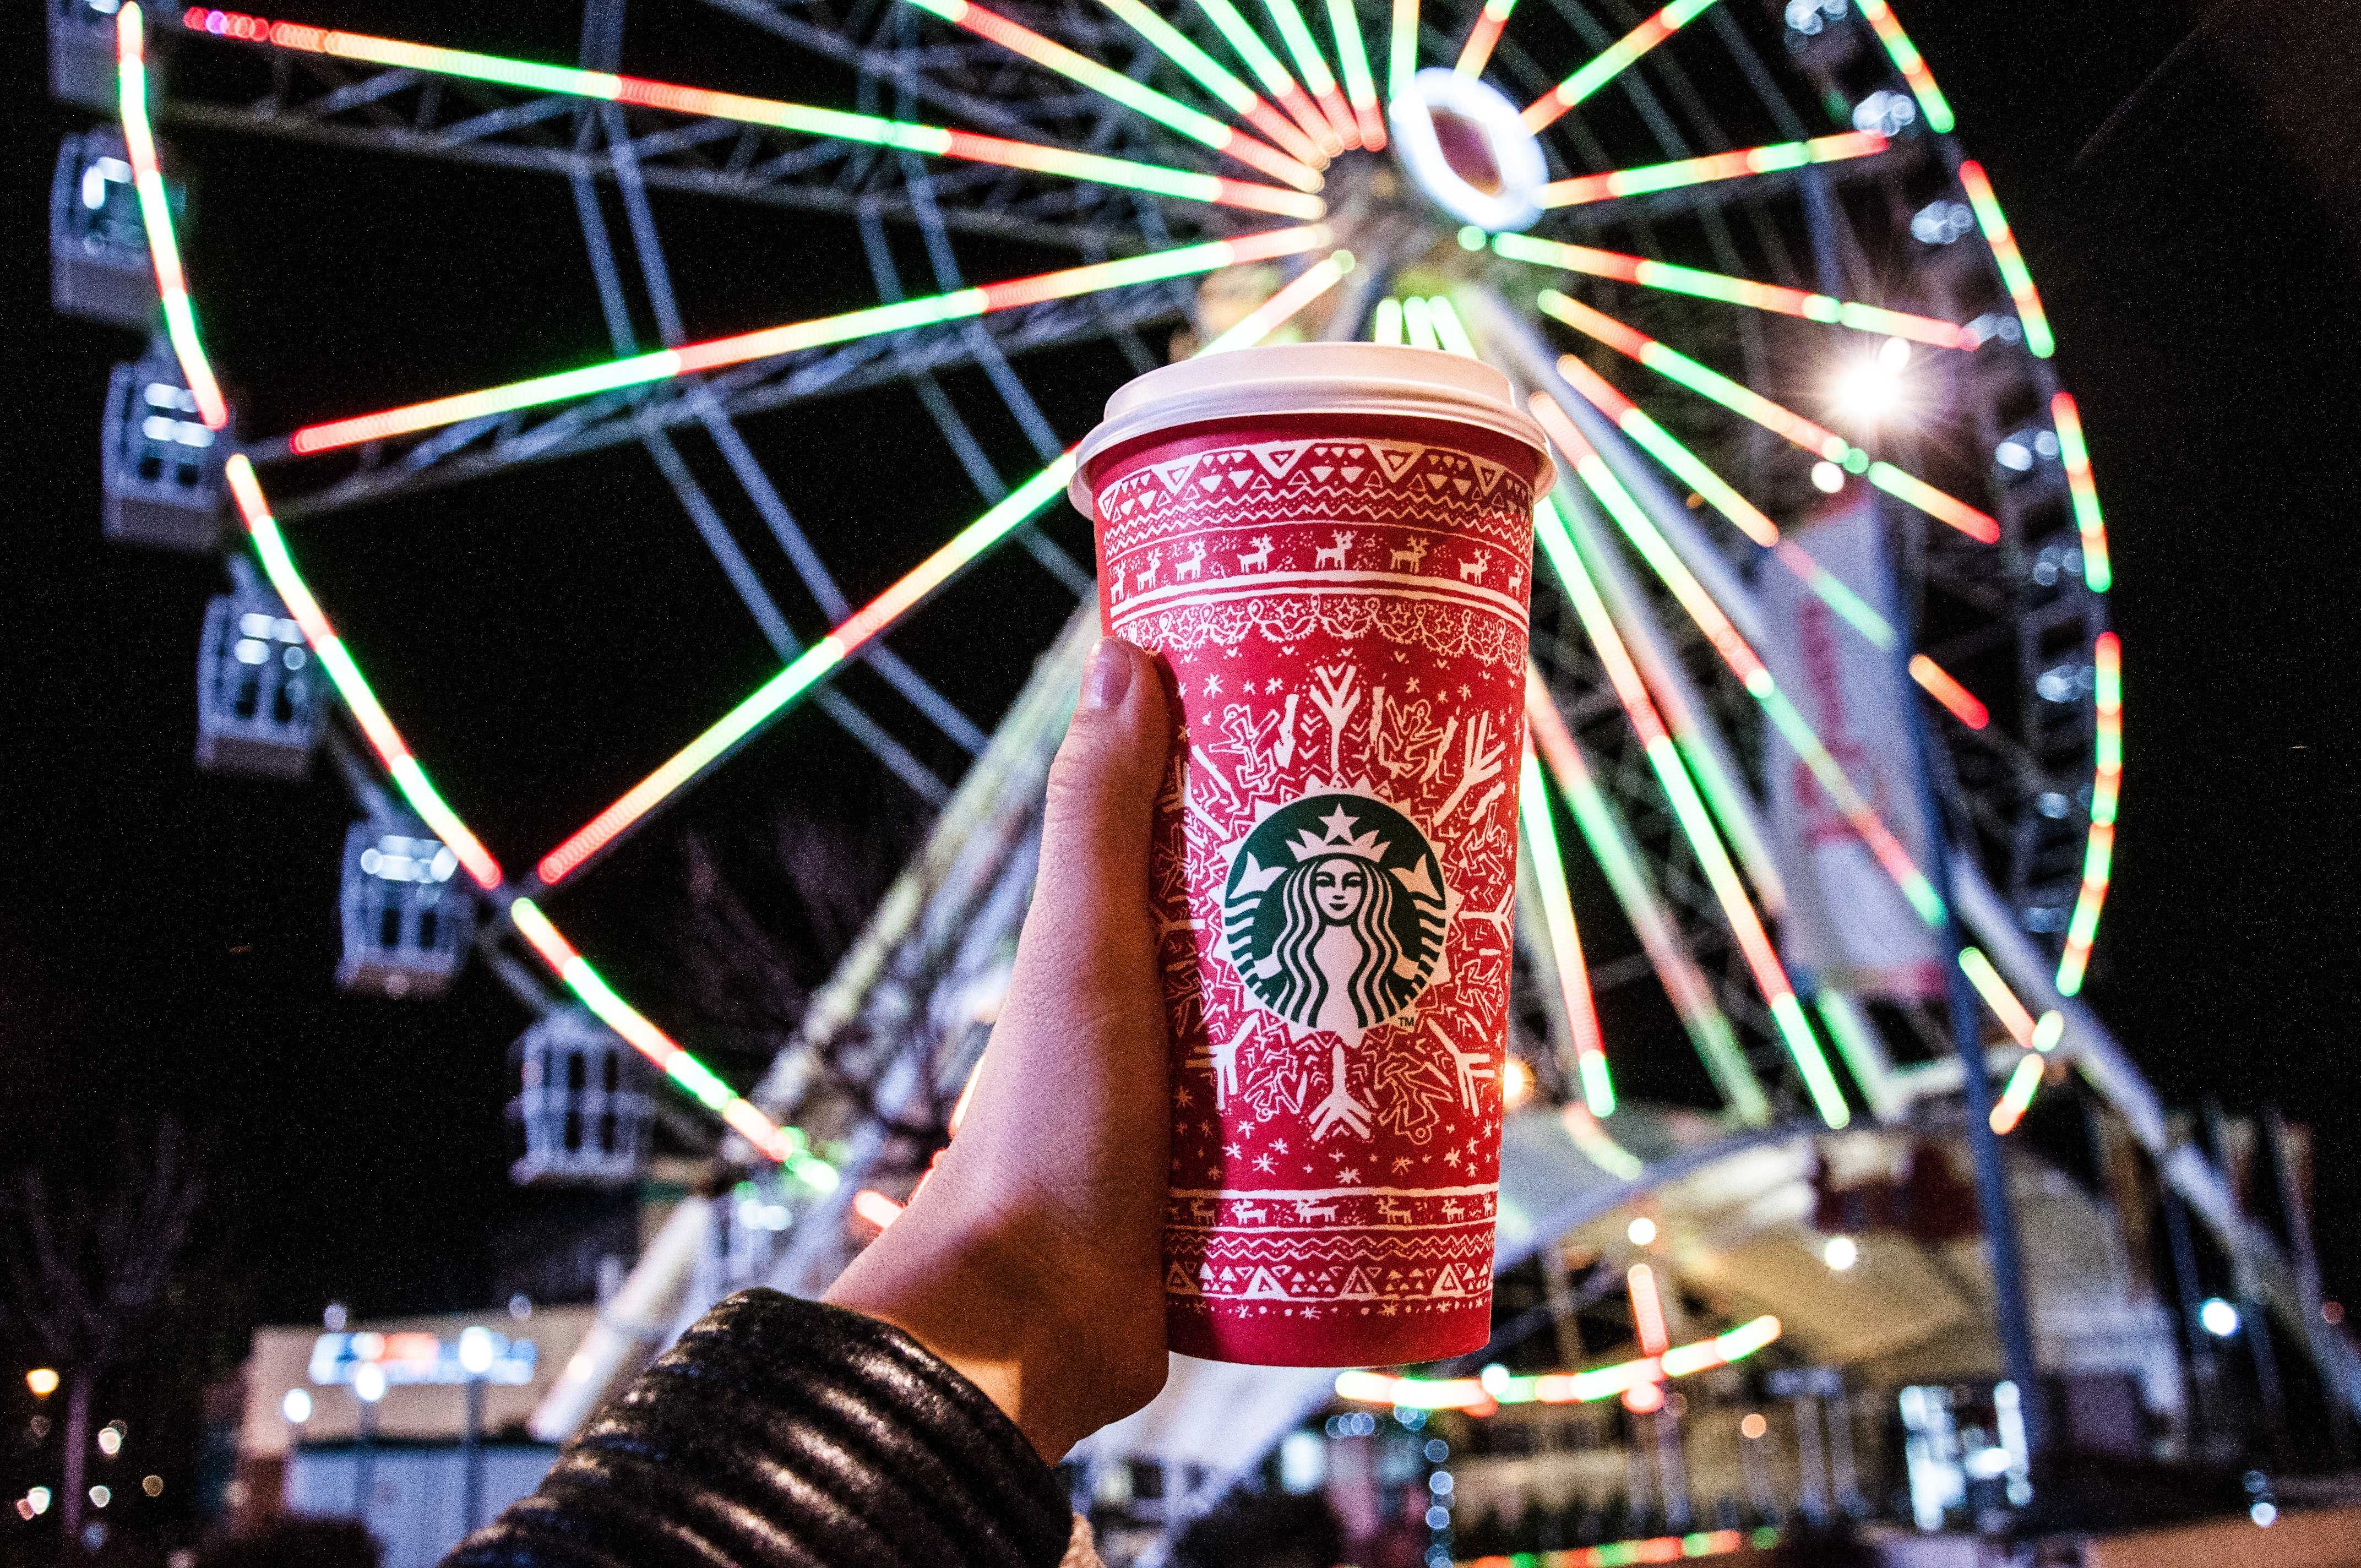 Red and white starbucks disposable cup photo